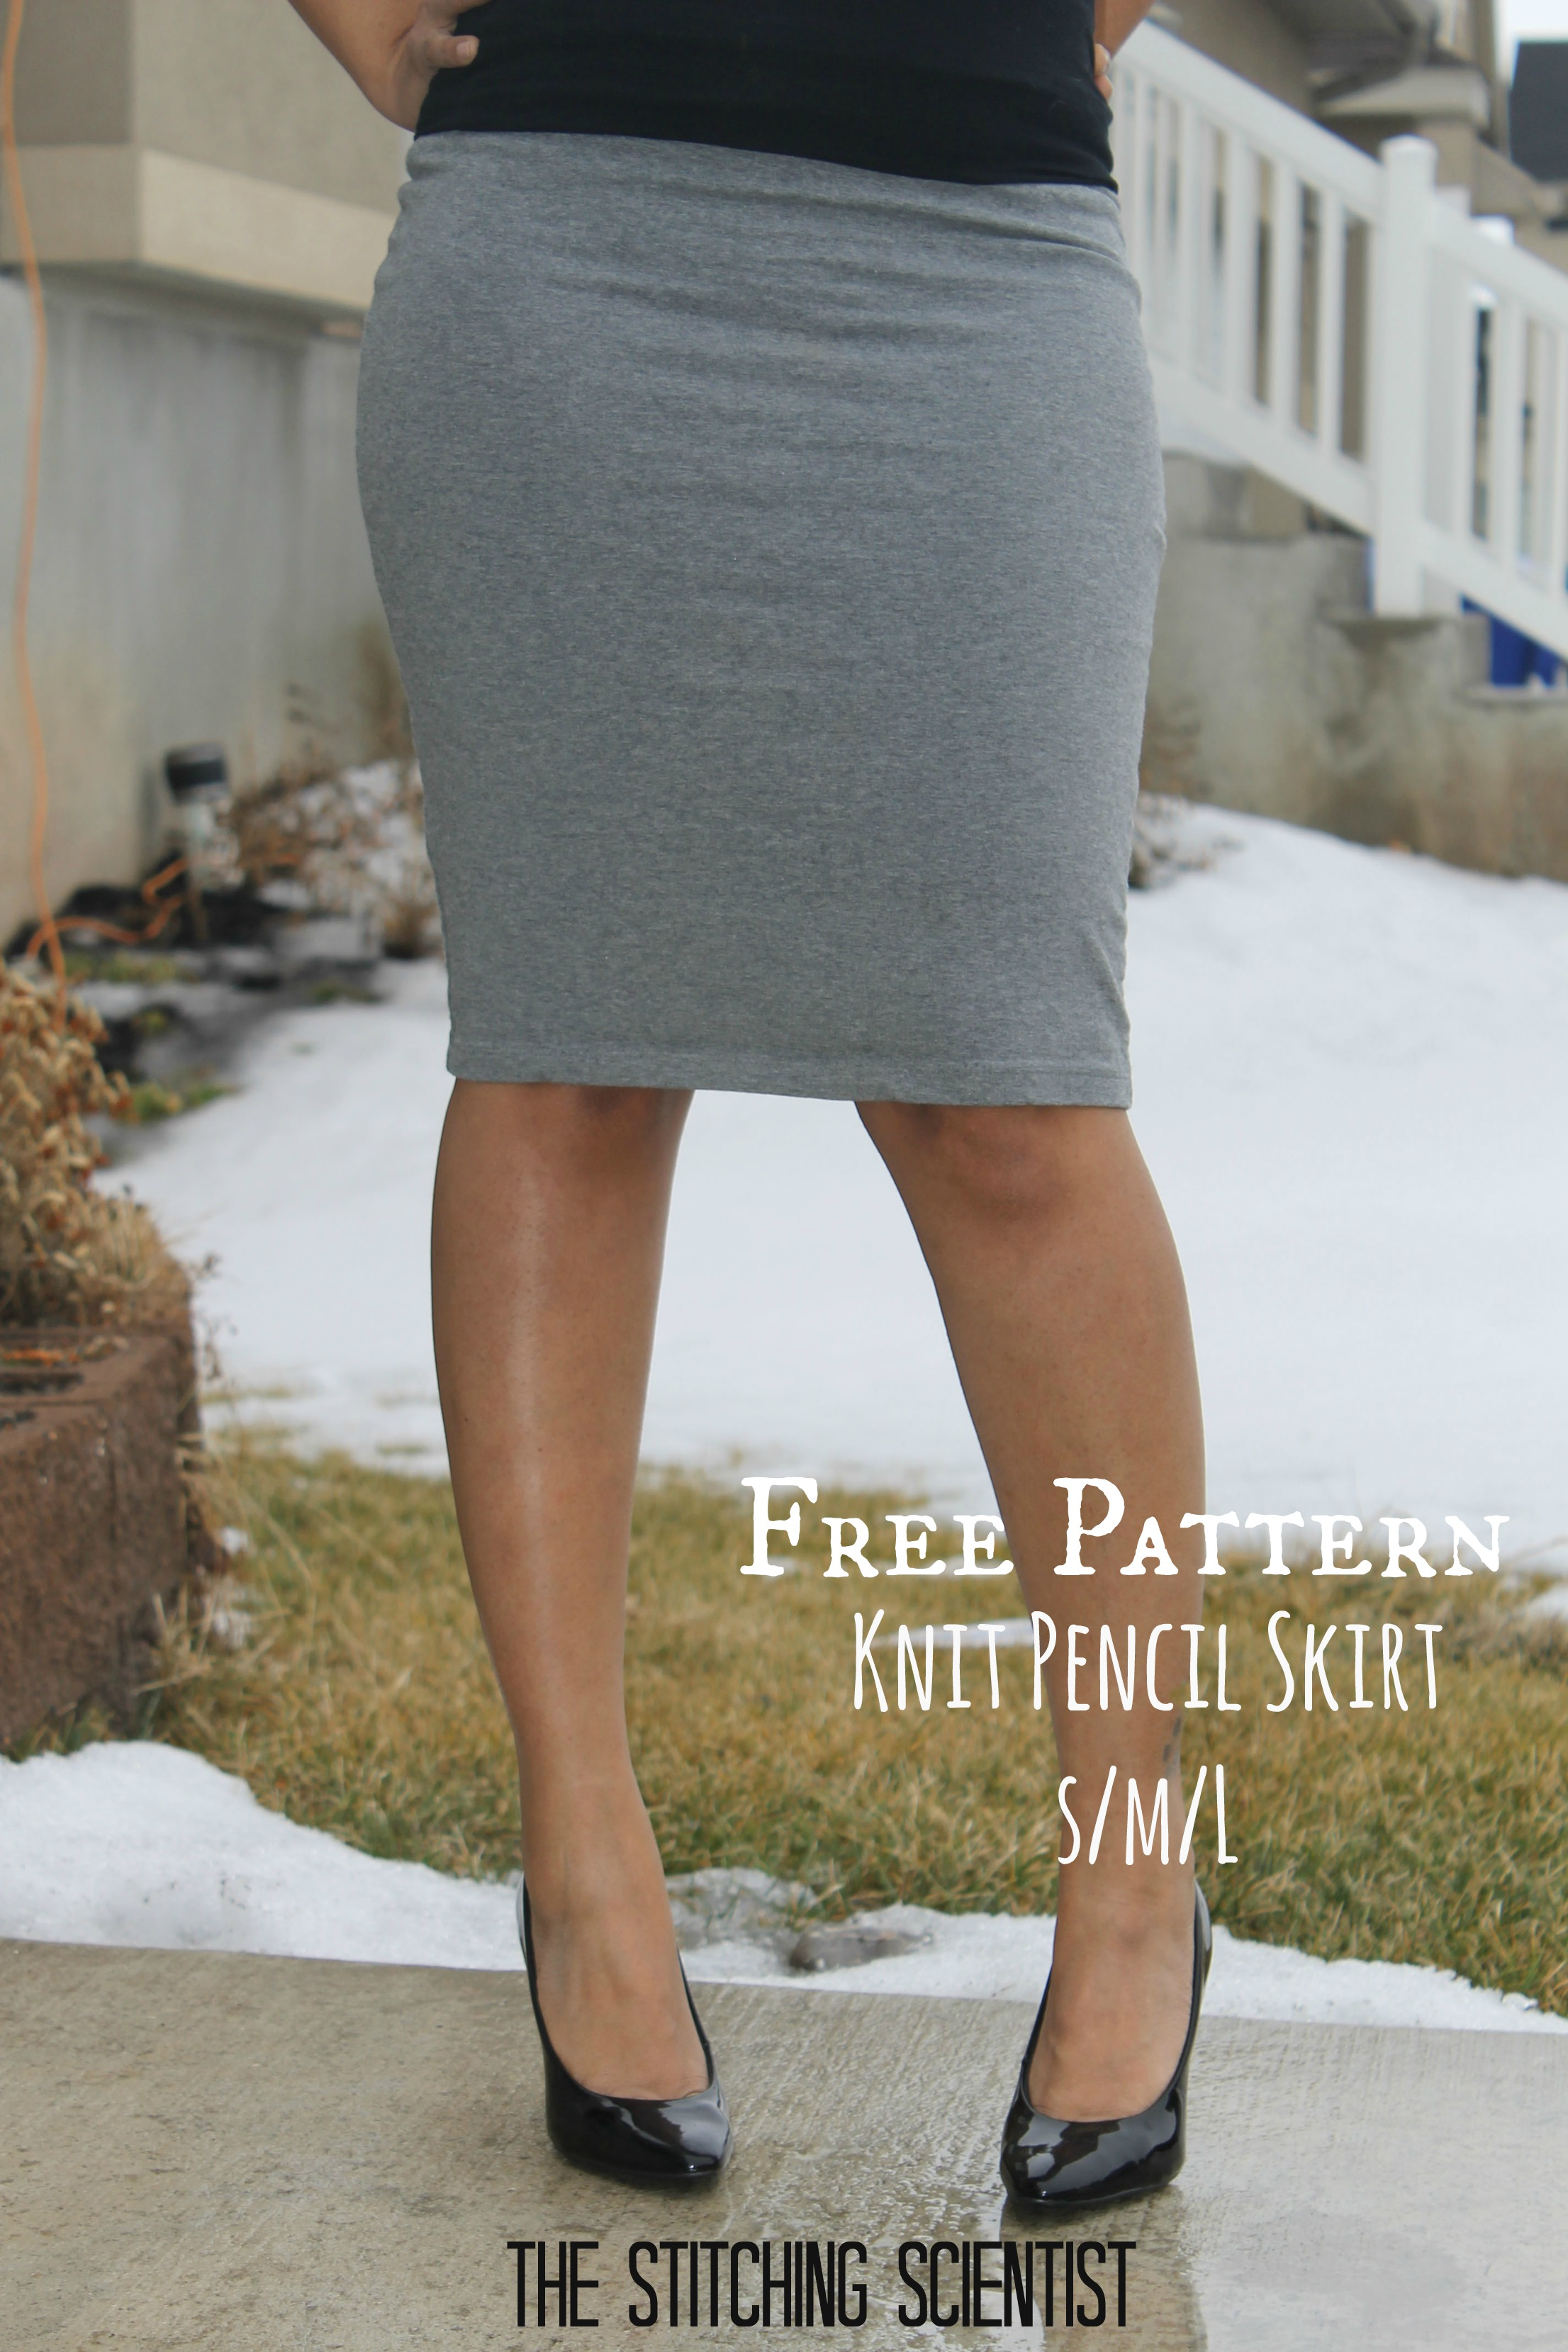 Free Skirt Patterns-Sexy Knit Pencil Skirt | The Stitching Scientist